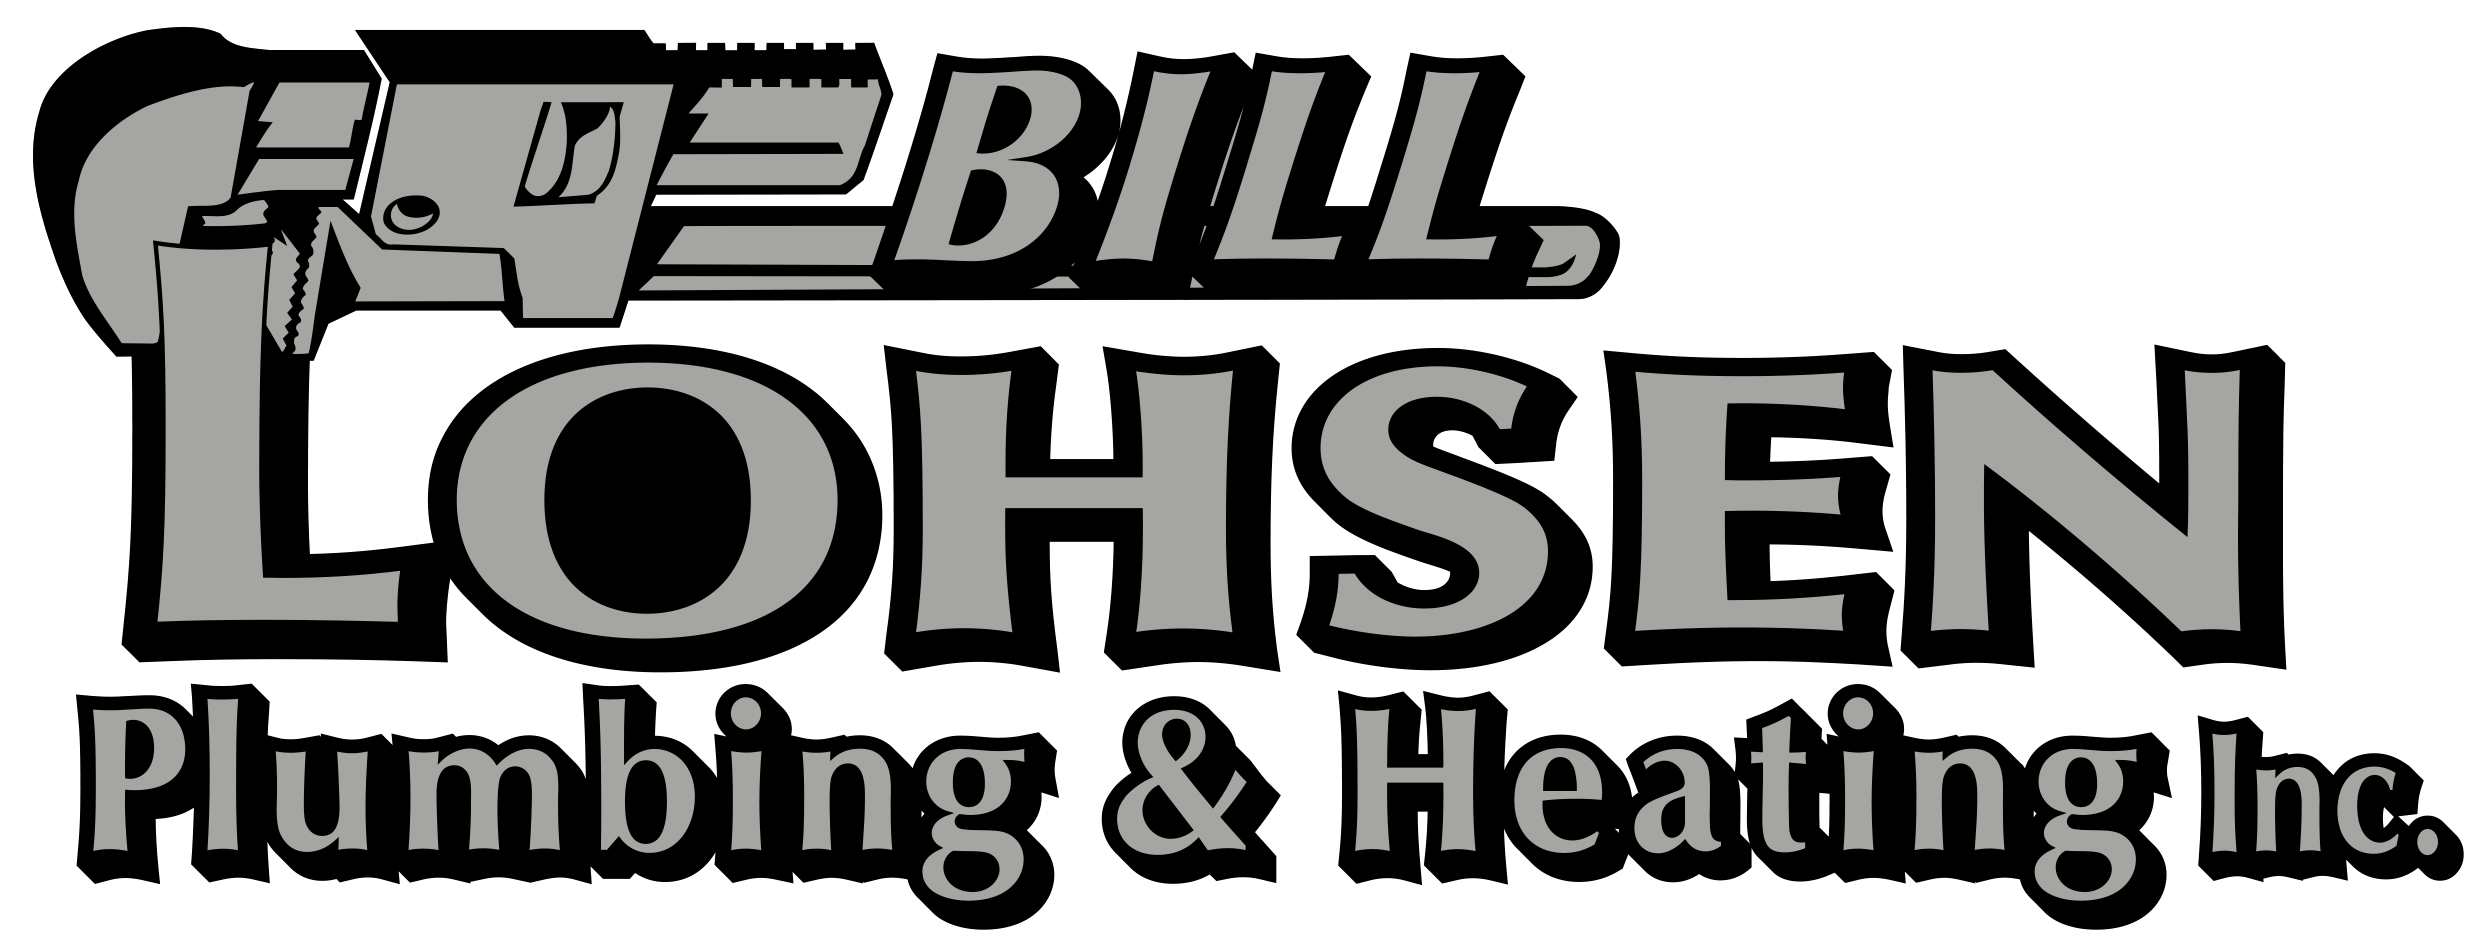 Bill Lohsen Plumbing and Heating, Inc.